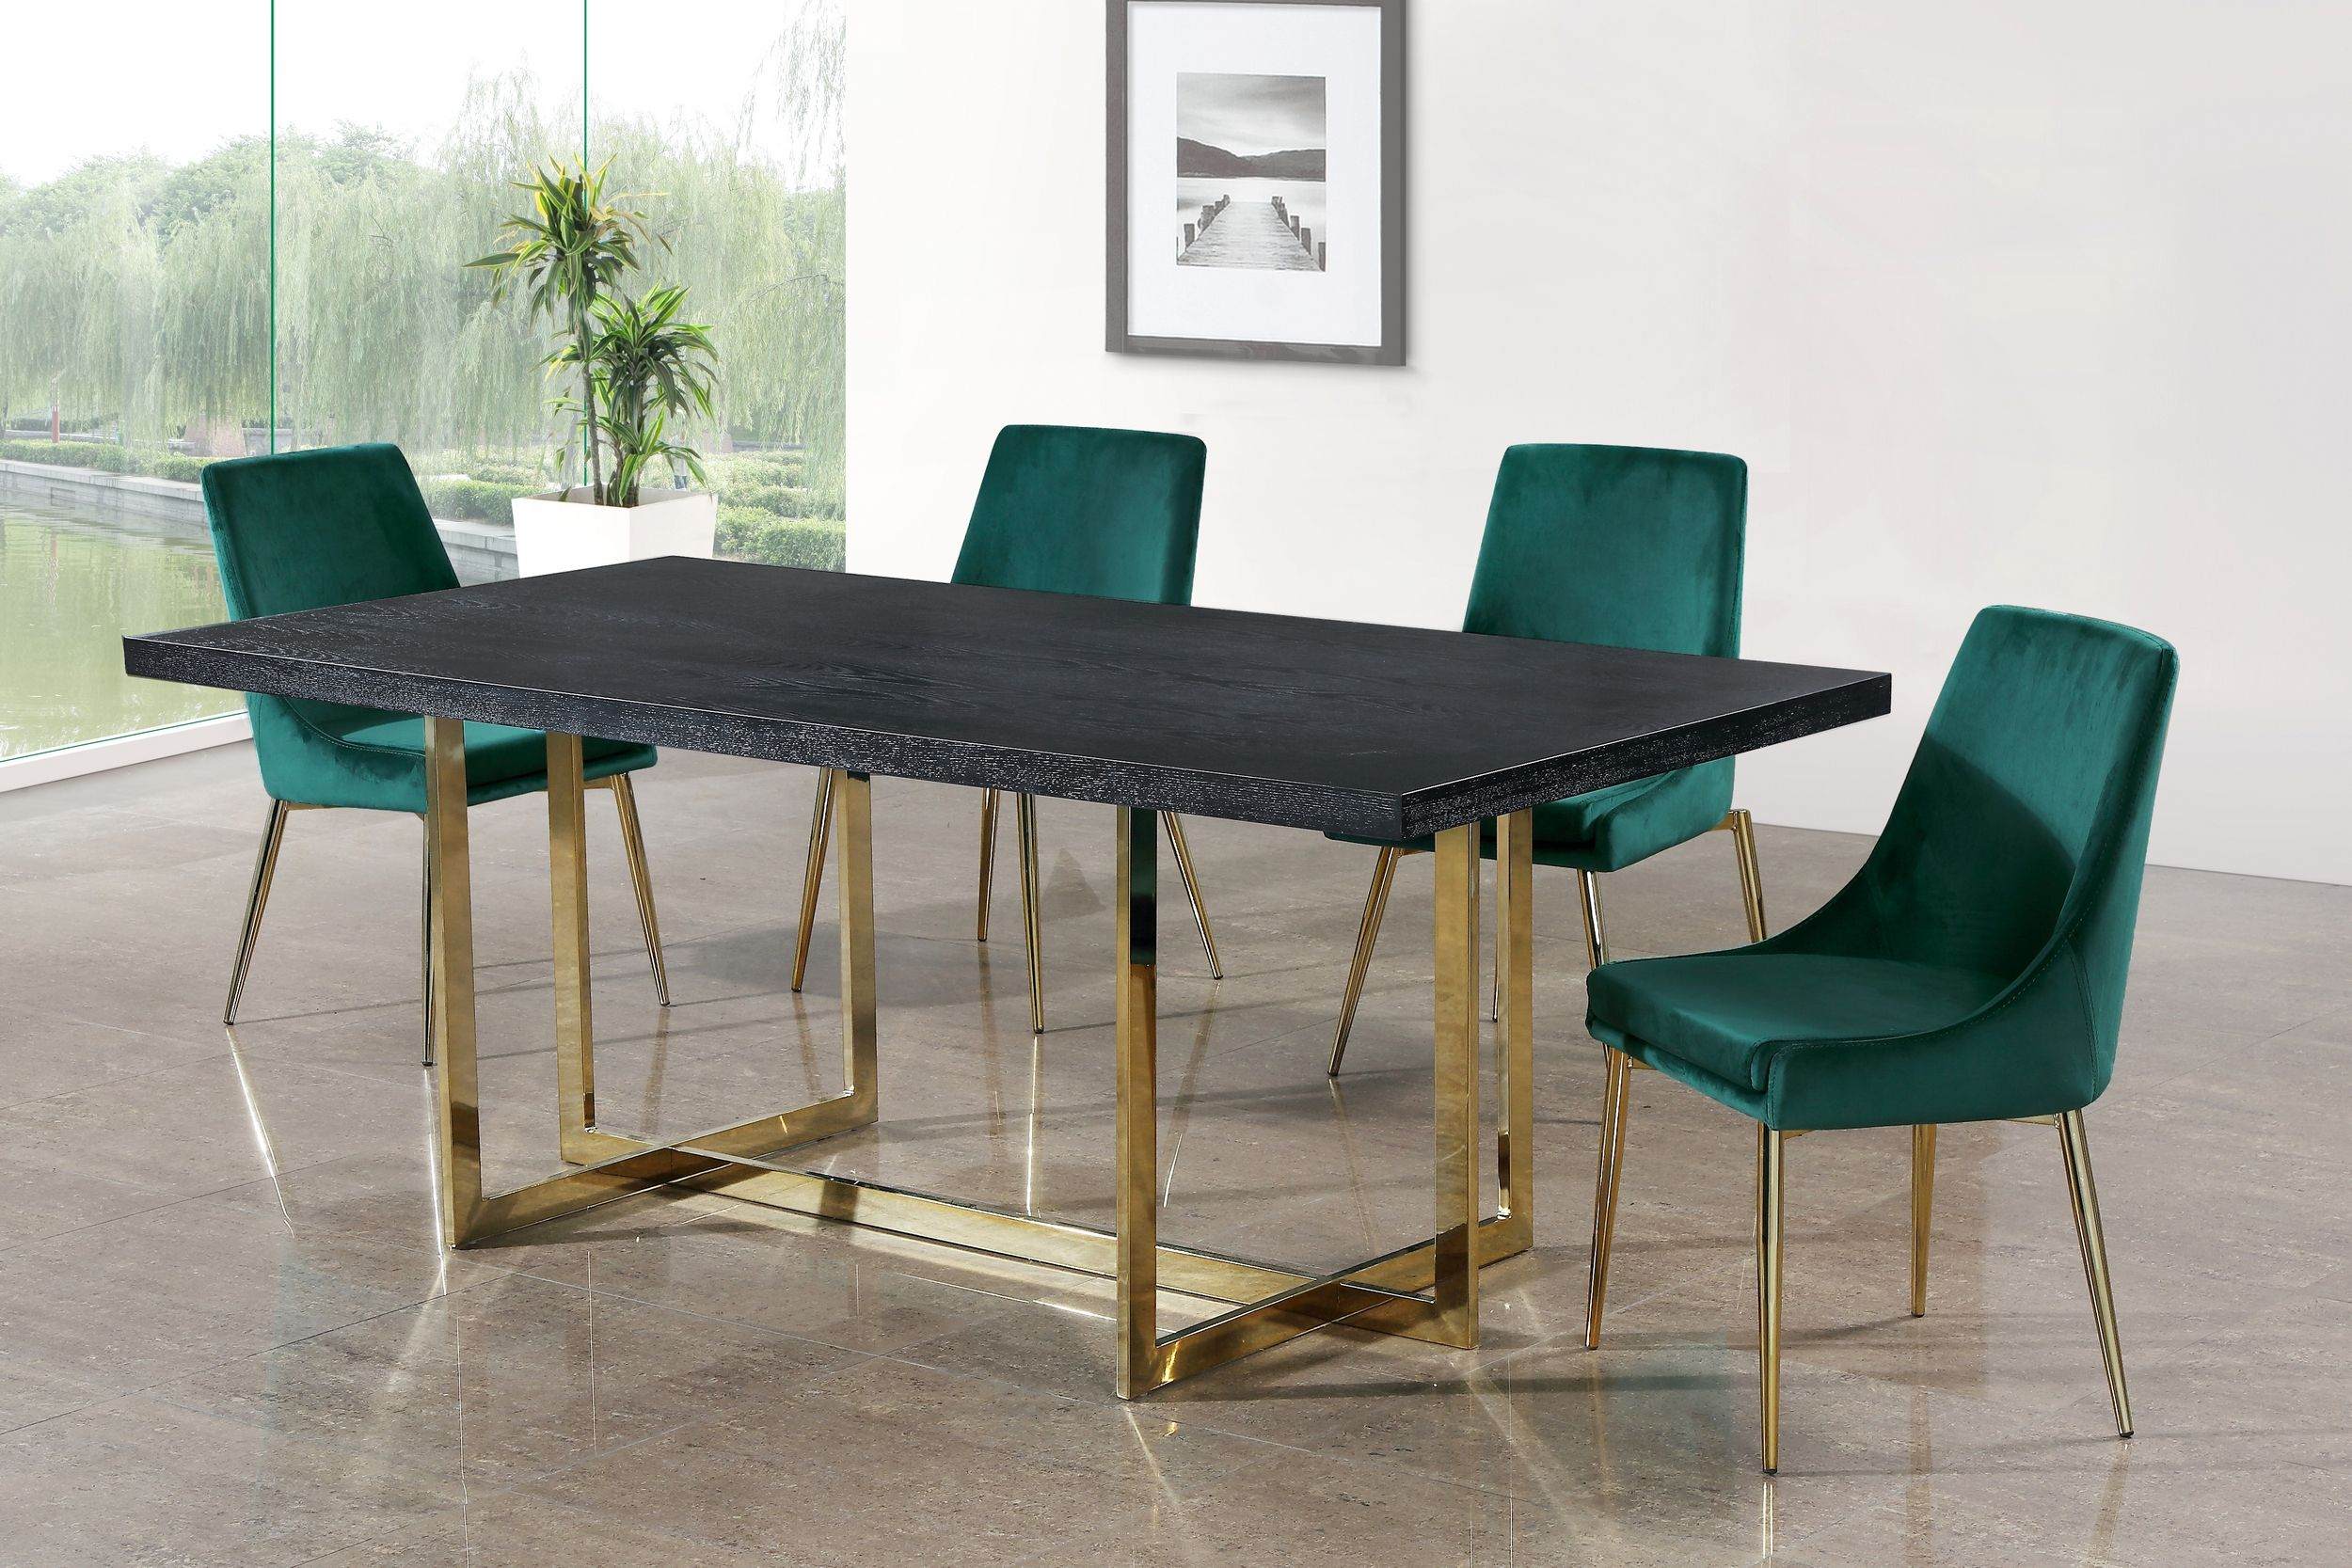 meridian furniture accent pieces for dining room table elle karina green gold piece set today studded chairs grey retro legs small fold coffee yellow dark cherry wood thin cabinet